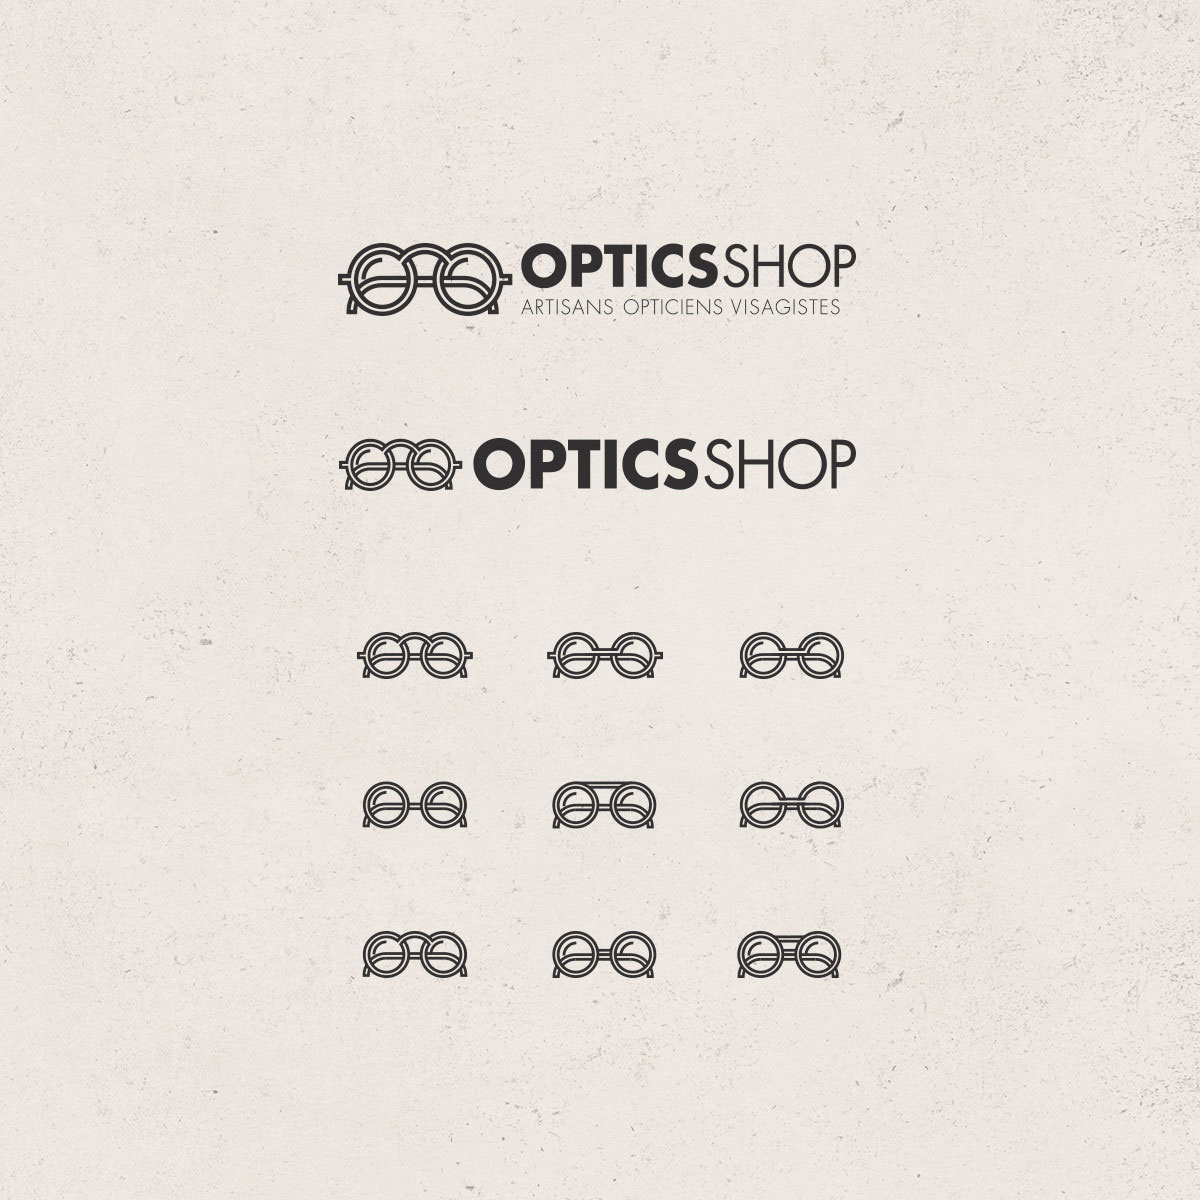 opticsshop-2